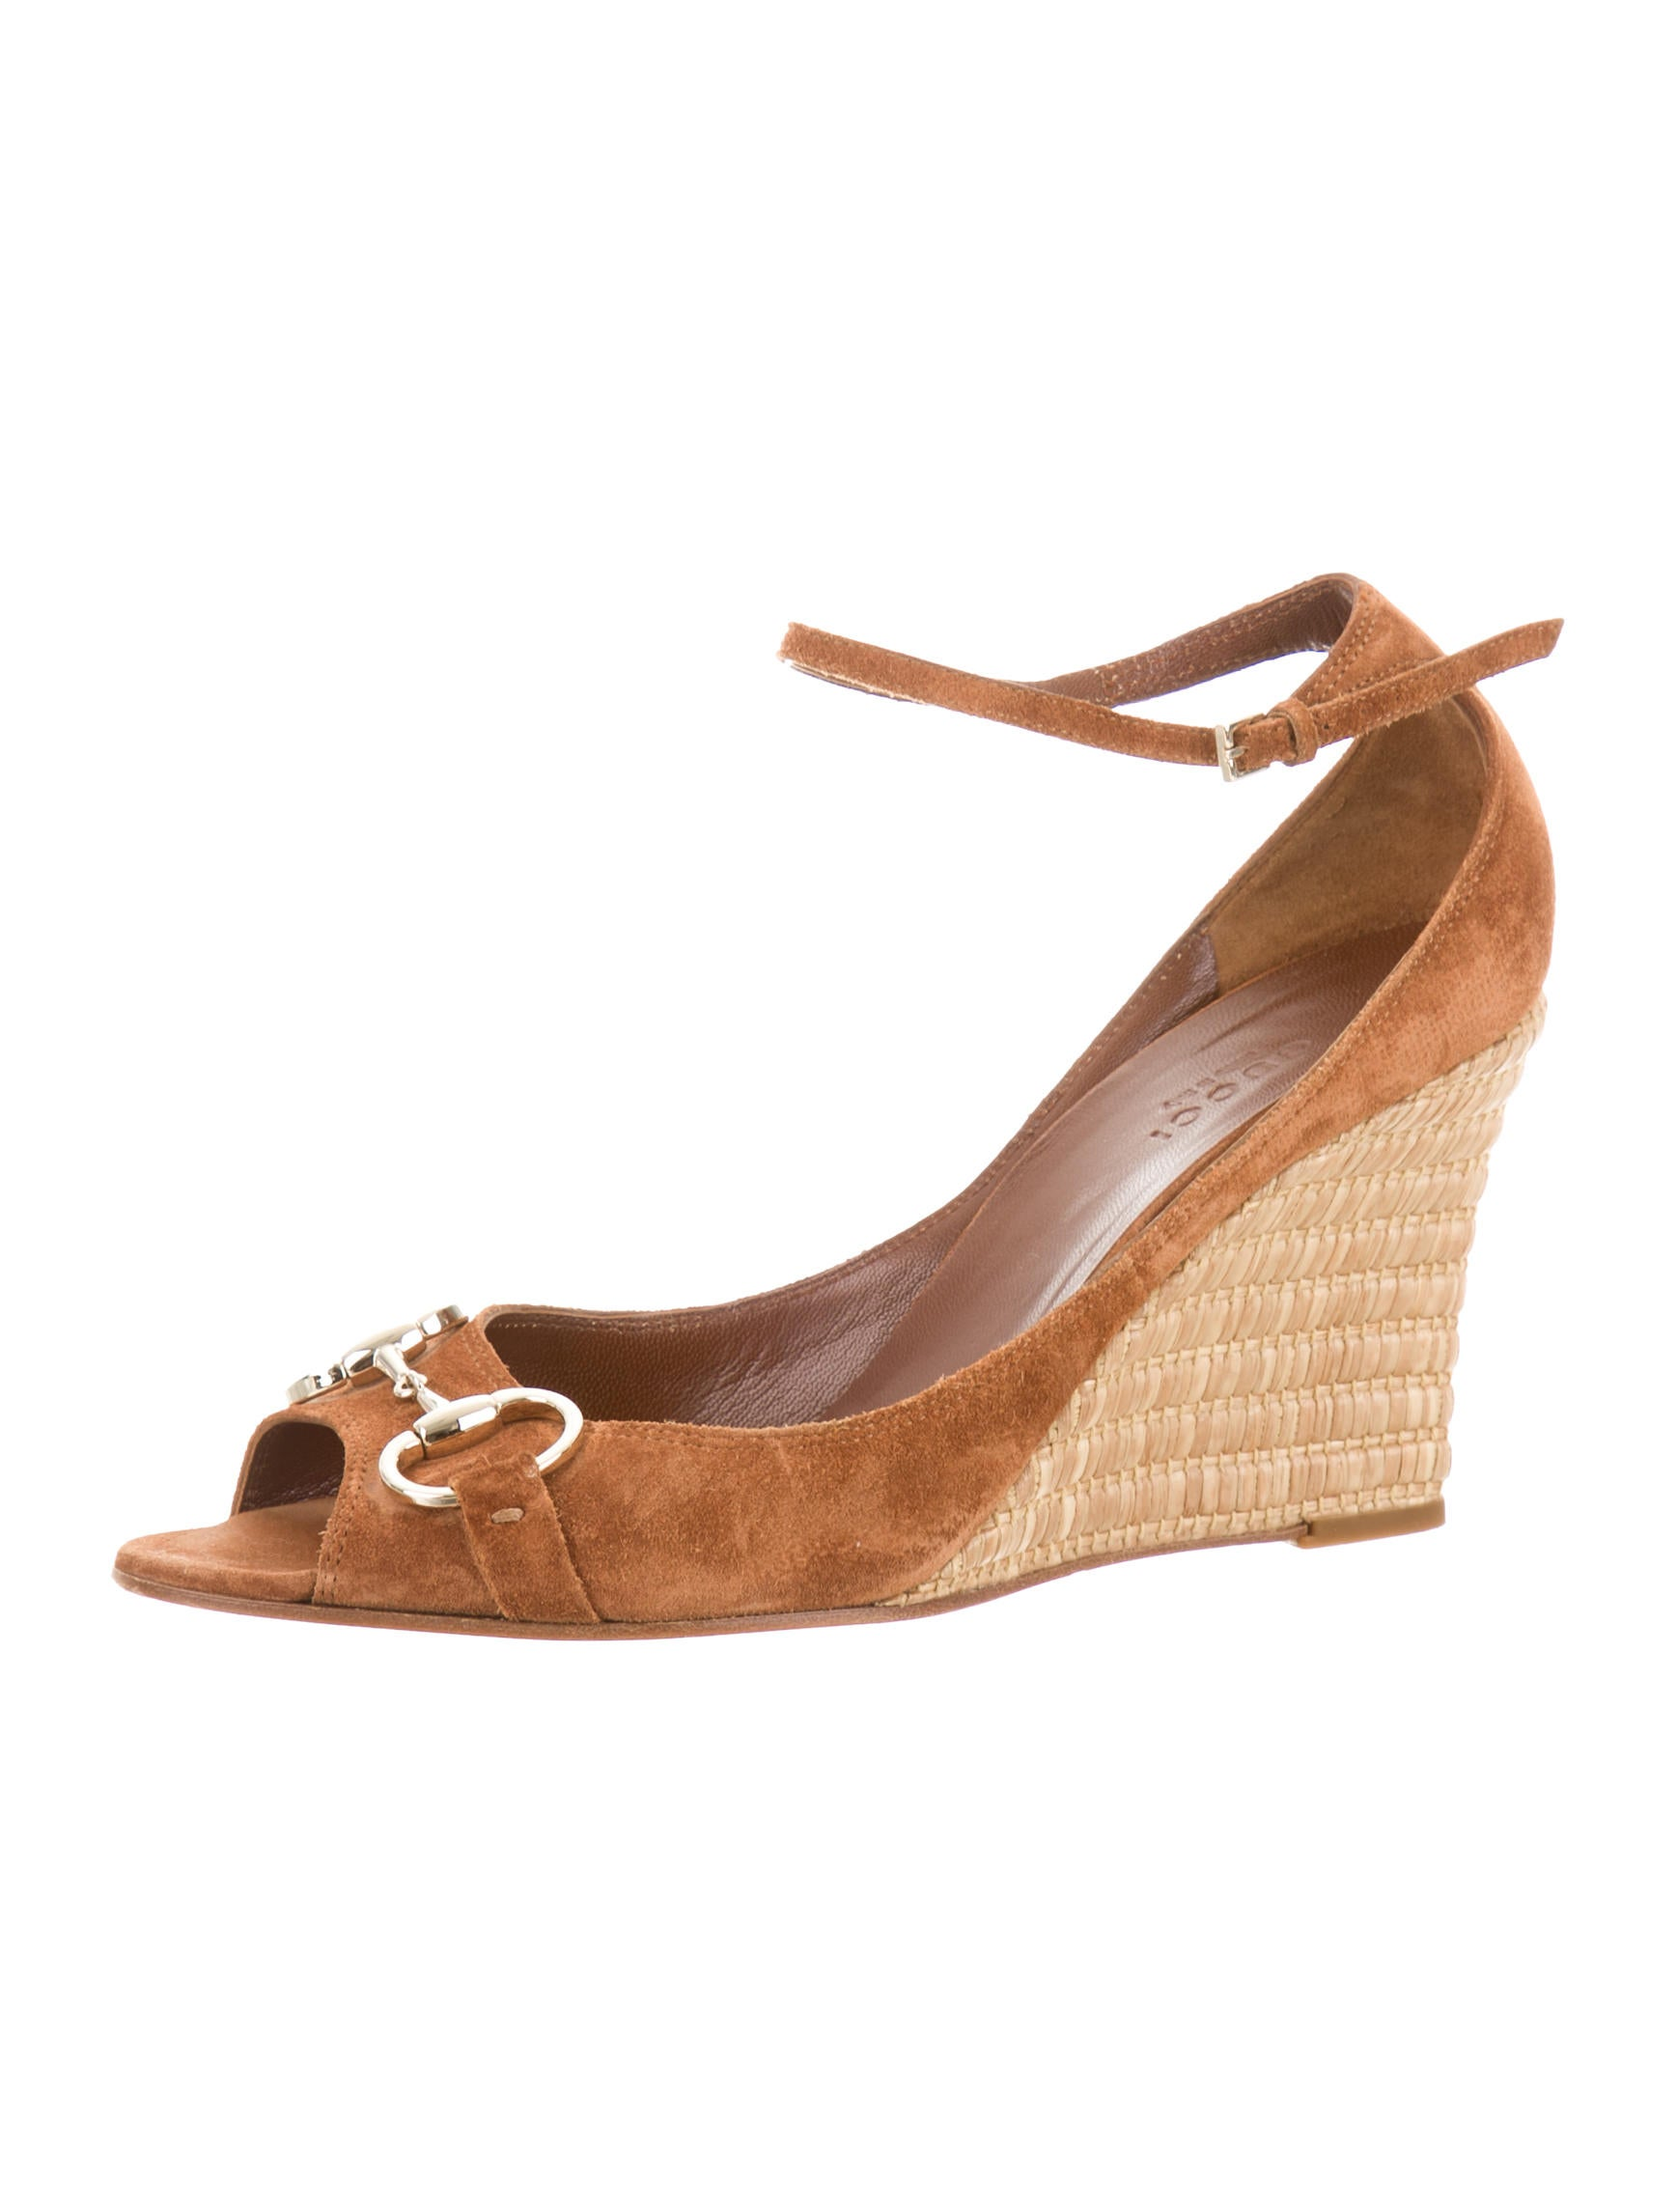 gucci suede horsebit wedges shoes guc83963 the realreal